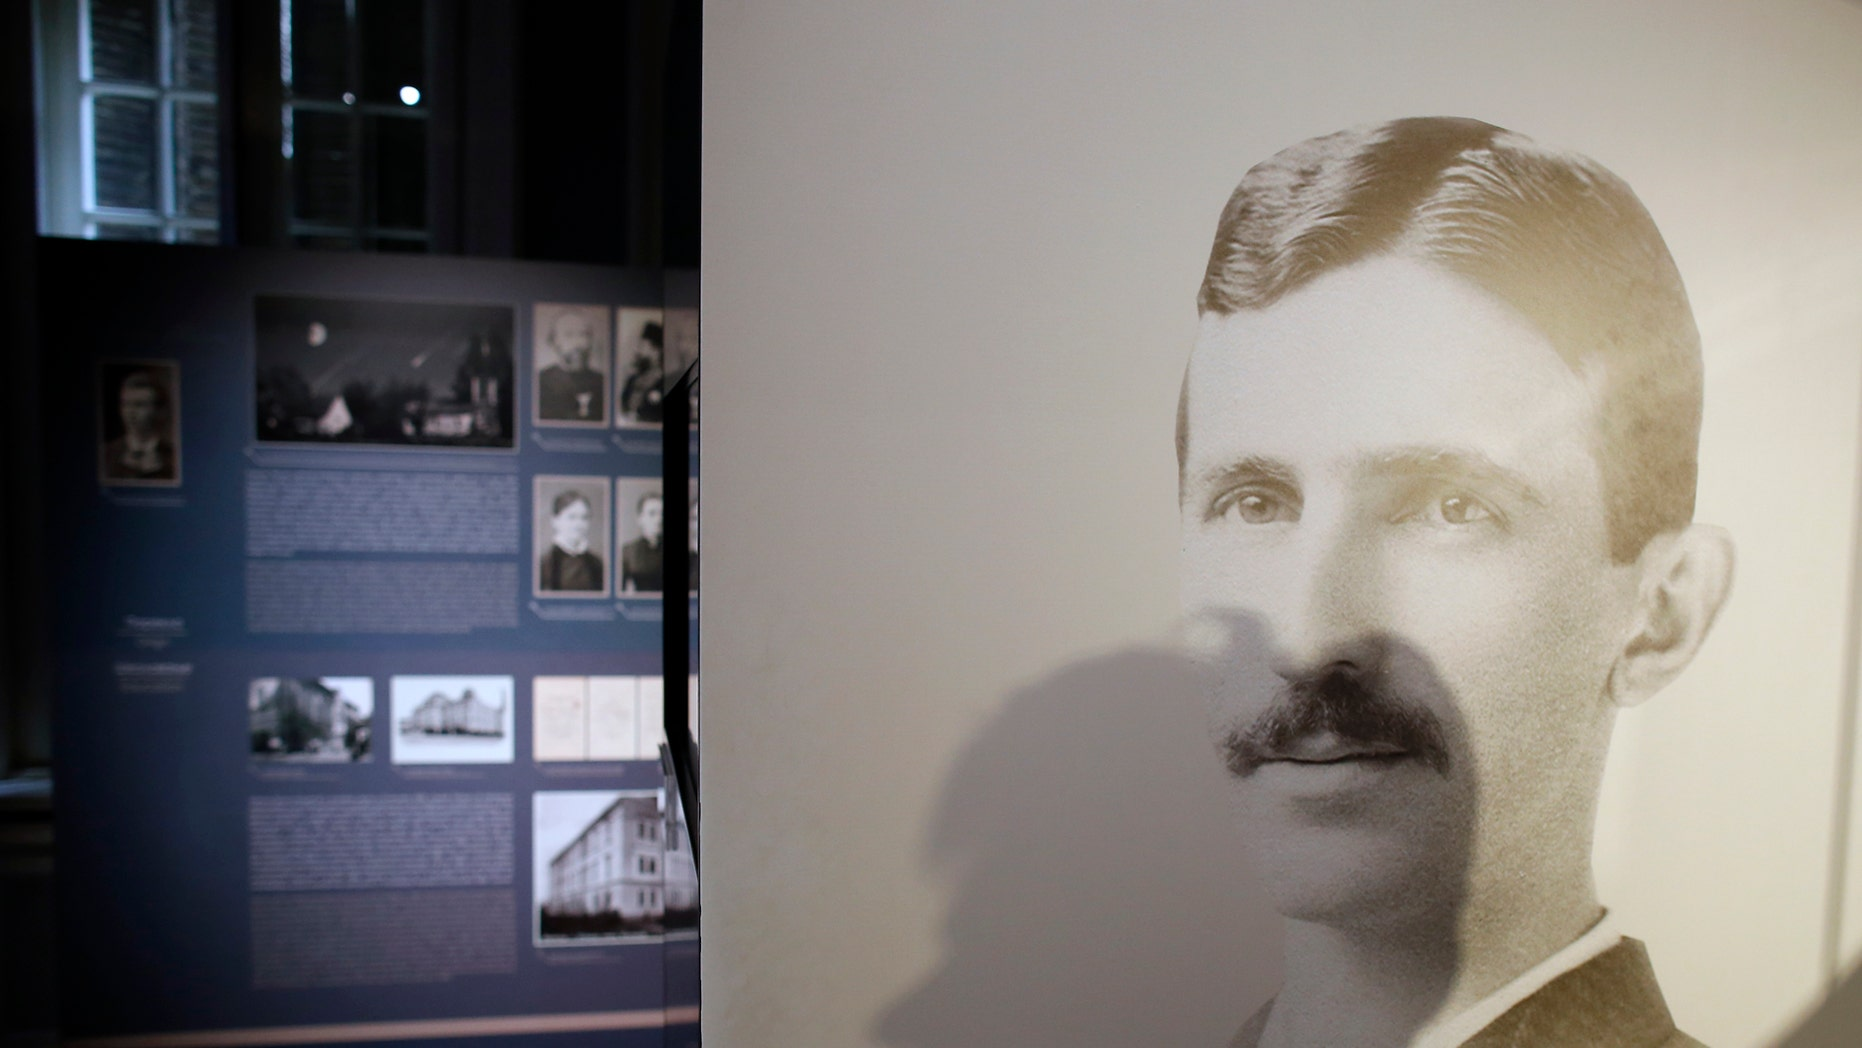 A shadow of Milica Kesler, curator and archivist is cast onto a poster of Nikola Tesla at the Nikola Tesla museum in Belgrade, Serbia, Thursday, March 7, 2019. A private culture society in Serbia has made public two letters written by Serb-American inventor and electricity pioneer Nikola Tesla. The Adligat group has told The Associated Press they recently obtained the letters from a collector and verified their authenticity with multiple sources. (AP Photo/Darko Vojinovic)